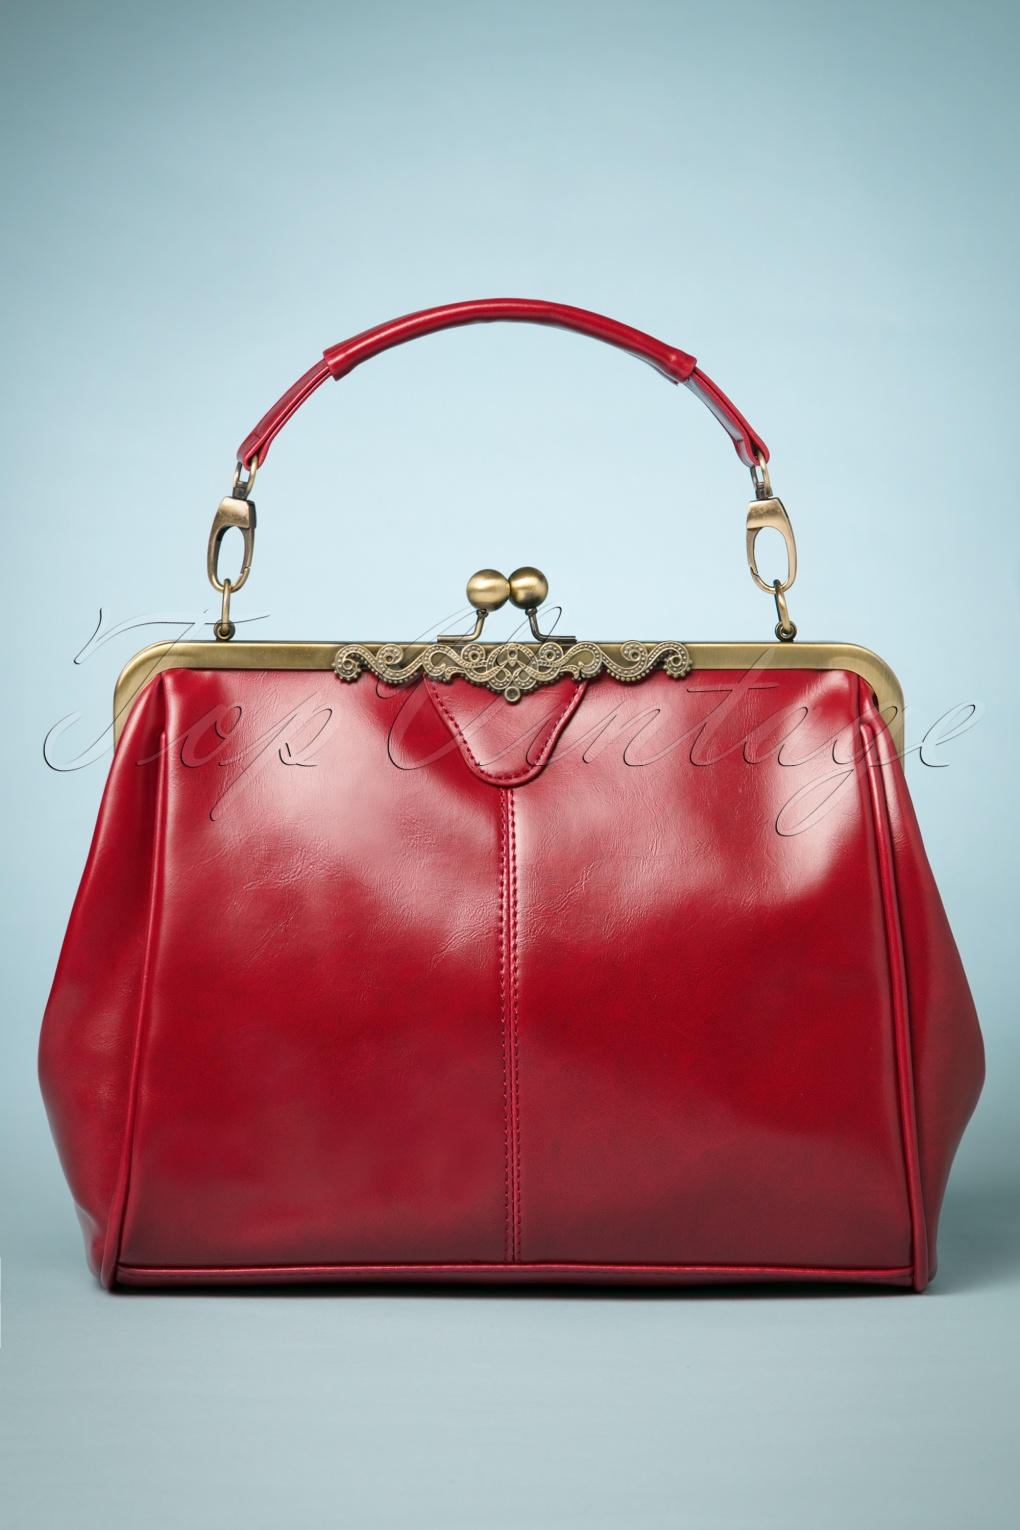 1920s Style Purses, Flapper Bags, Handbags 20s Vintage Frame Kisslock Clasp Bag in Red £35.51 AT vintagedancer.com